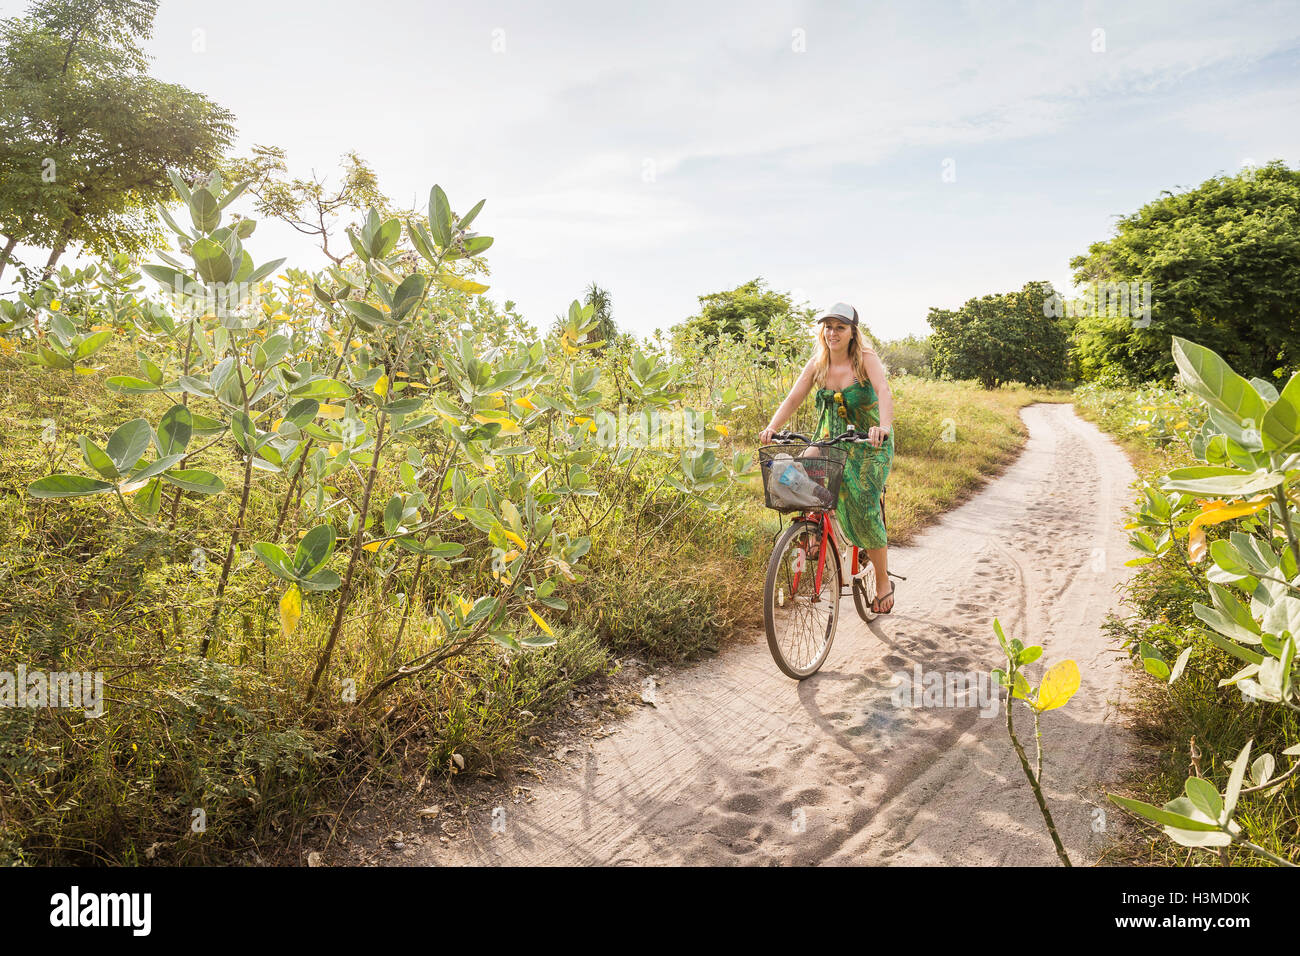 Young woman cycling on dirt track, Gili Meno, Lombok, Indonesia - Stock Image